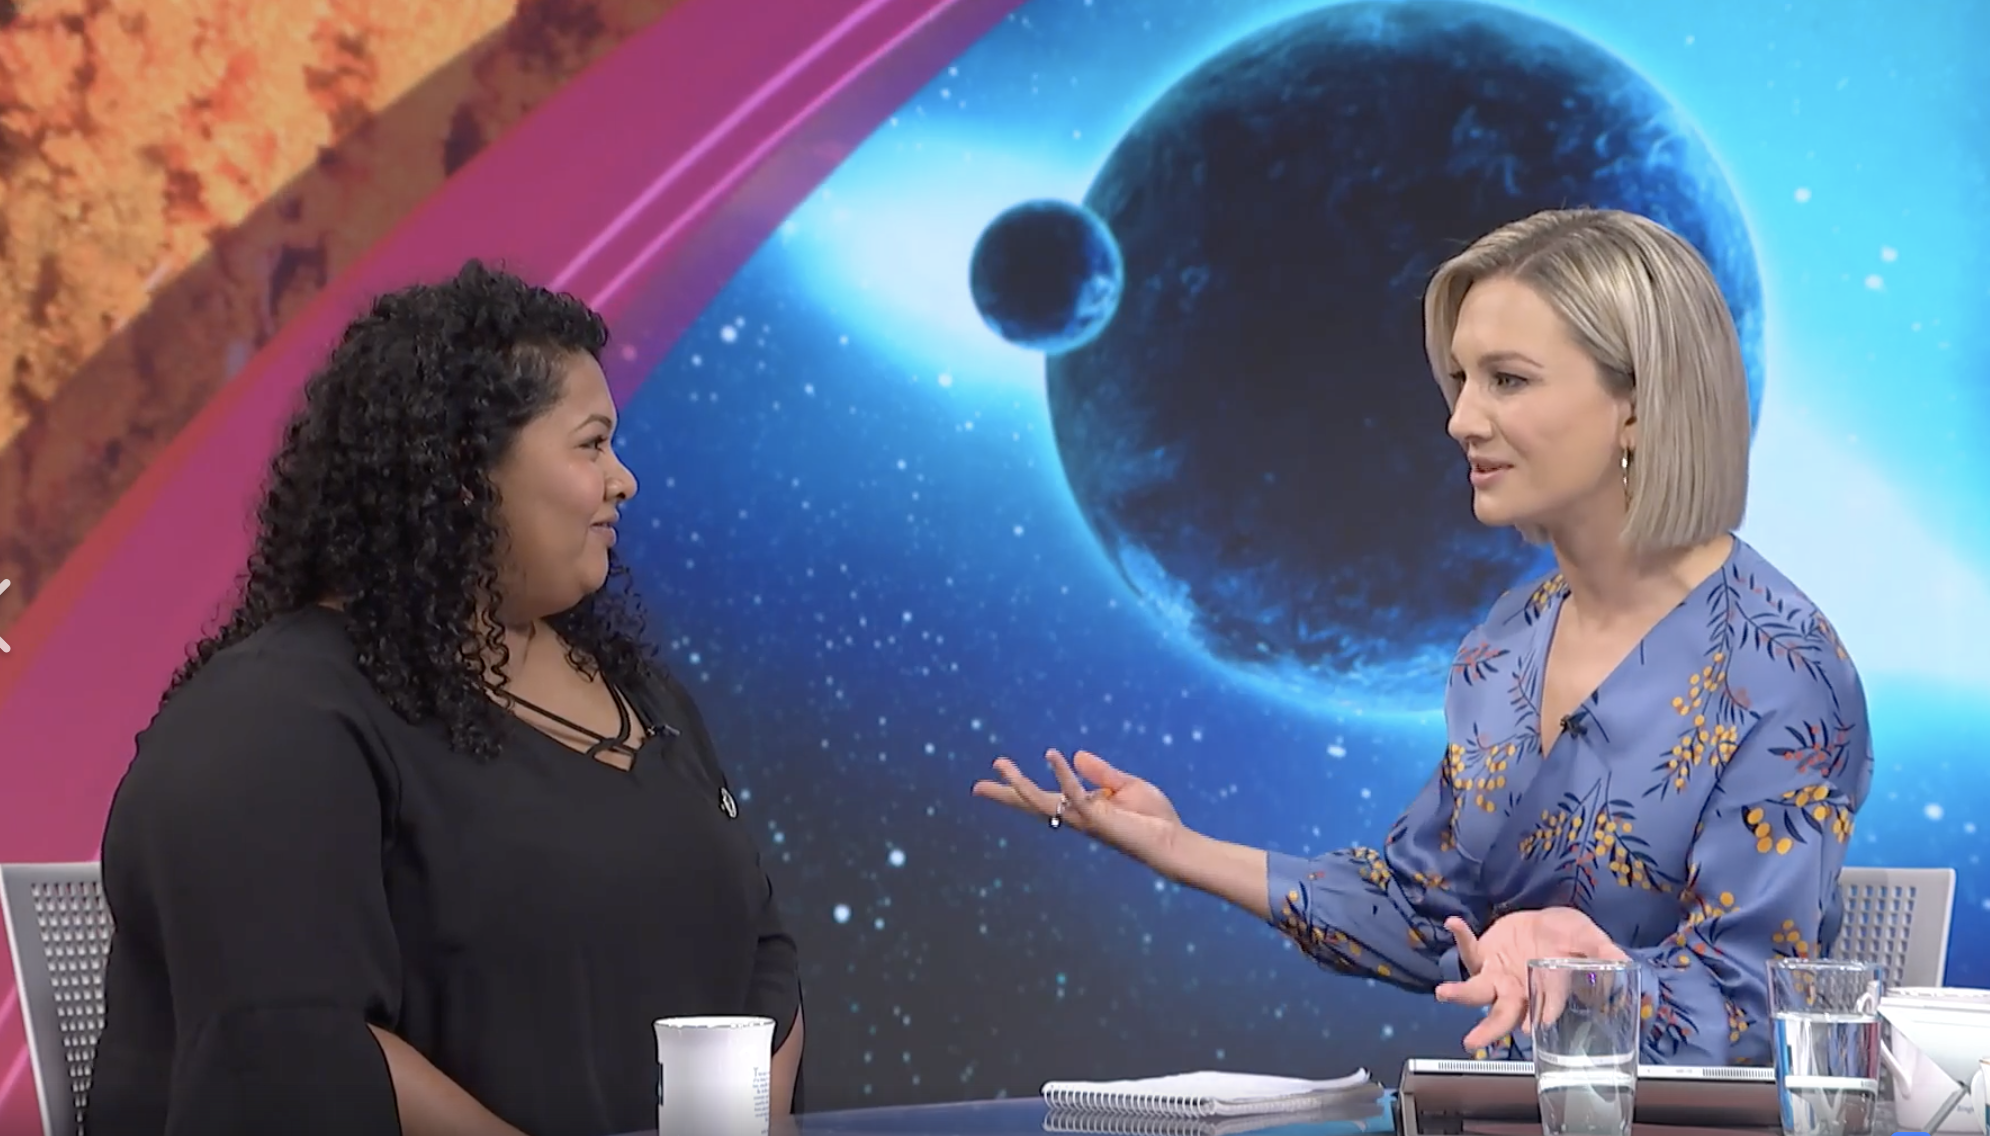 Carolle discussing astronomical naming rights and a NZ competition to name a planet and a star in NZ,  https://space.auckland.ac.nz/nameexoworlds/